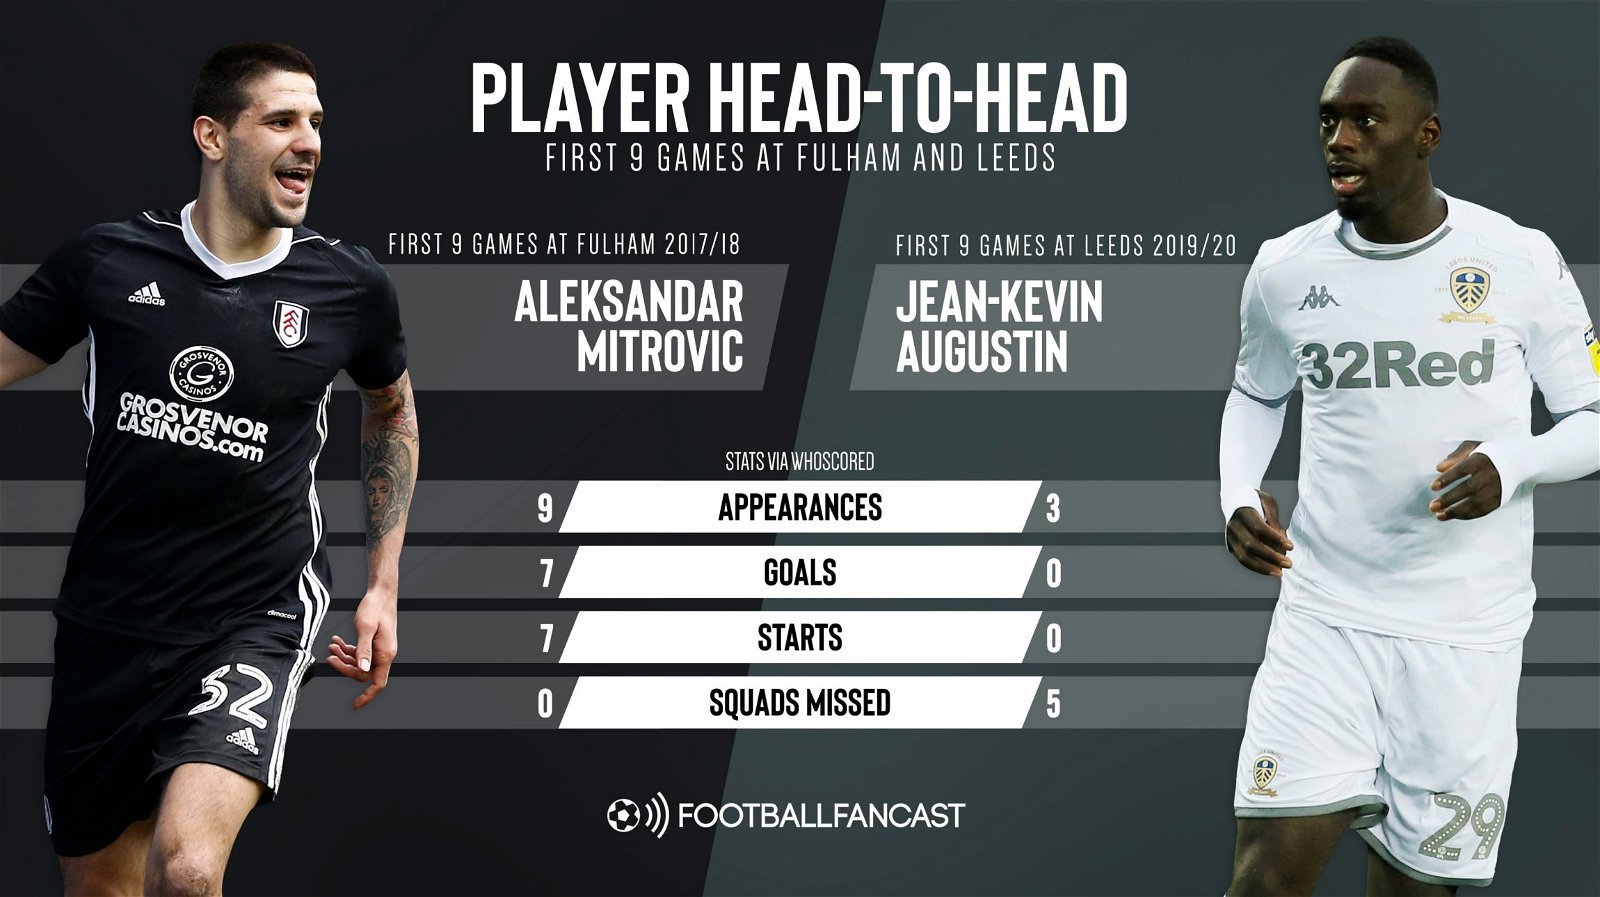 Aleksandar Mitrovic's first 9 games at Fulham 17 18 vs Jean Kevin Augustin first 9 games at Leeds 19 20 - No excuses: £22.5m-rated ace highlights Orta's huge blunder at Leeds - opinion